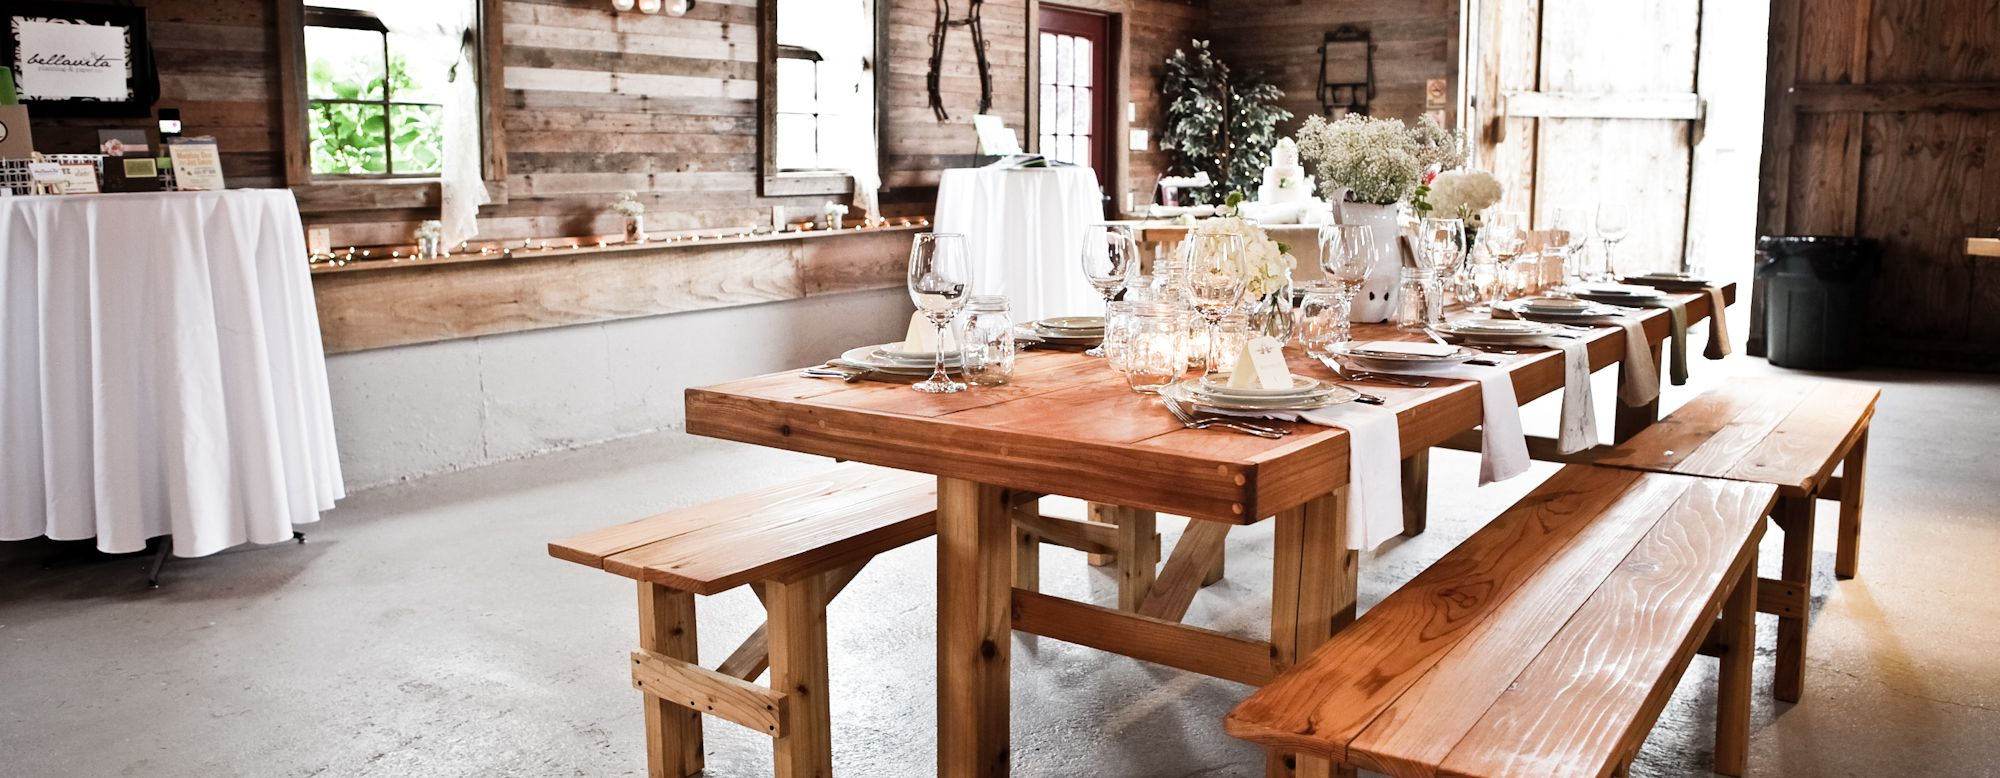 Seattle Farm Tables   wood table rentals seattle area  farm tables   mismatched dish rentals. Seattle Farm Tables   wood table rentals seattle area  farm tables